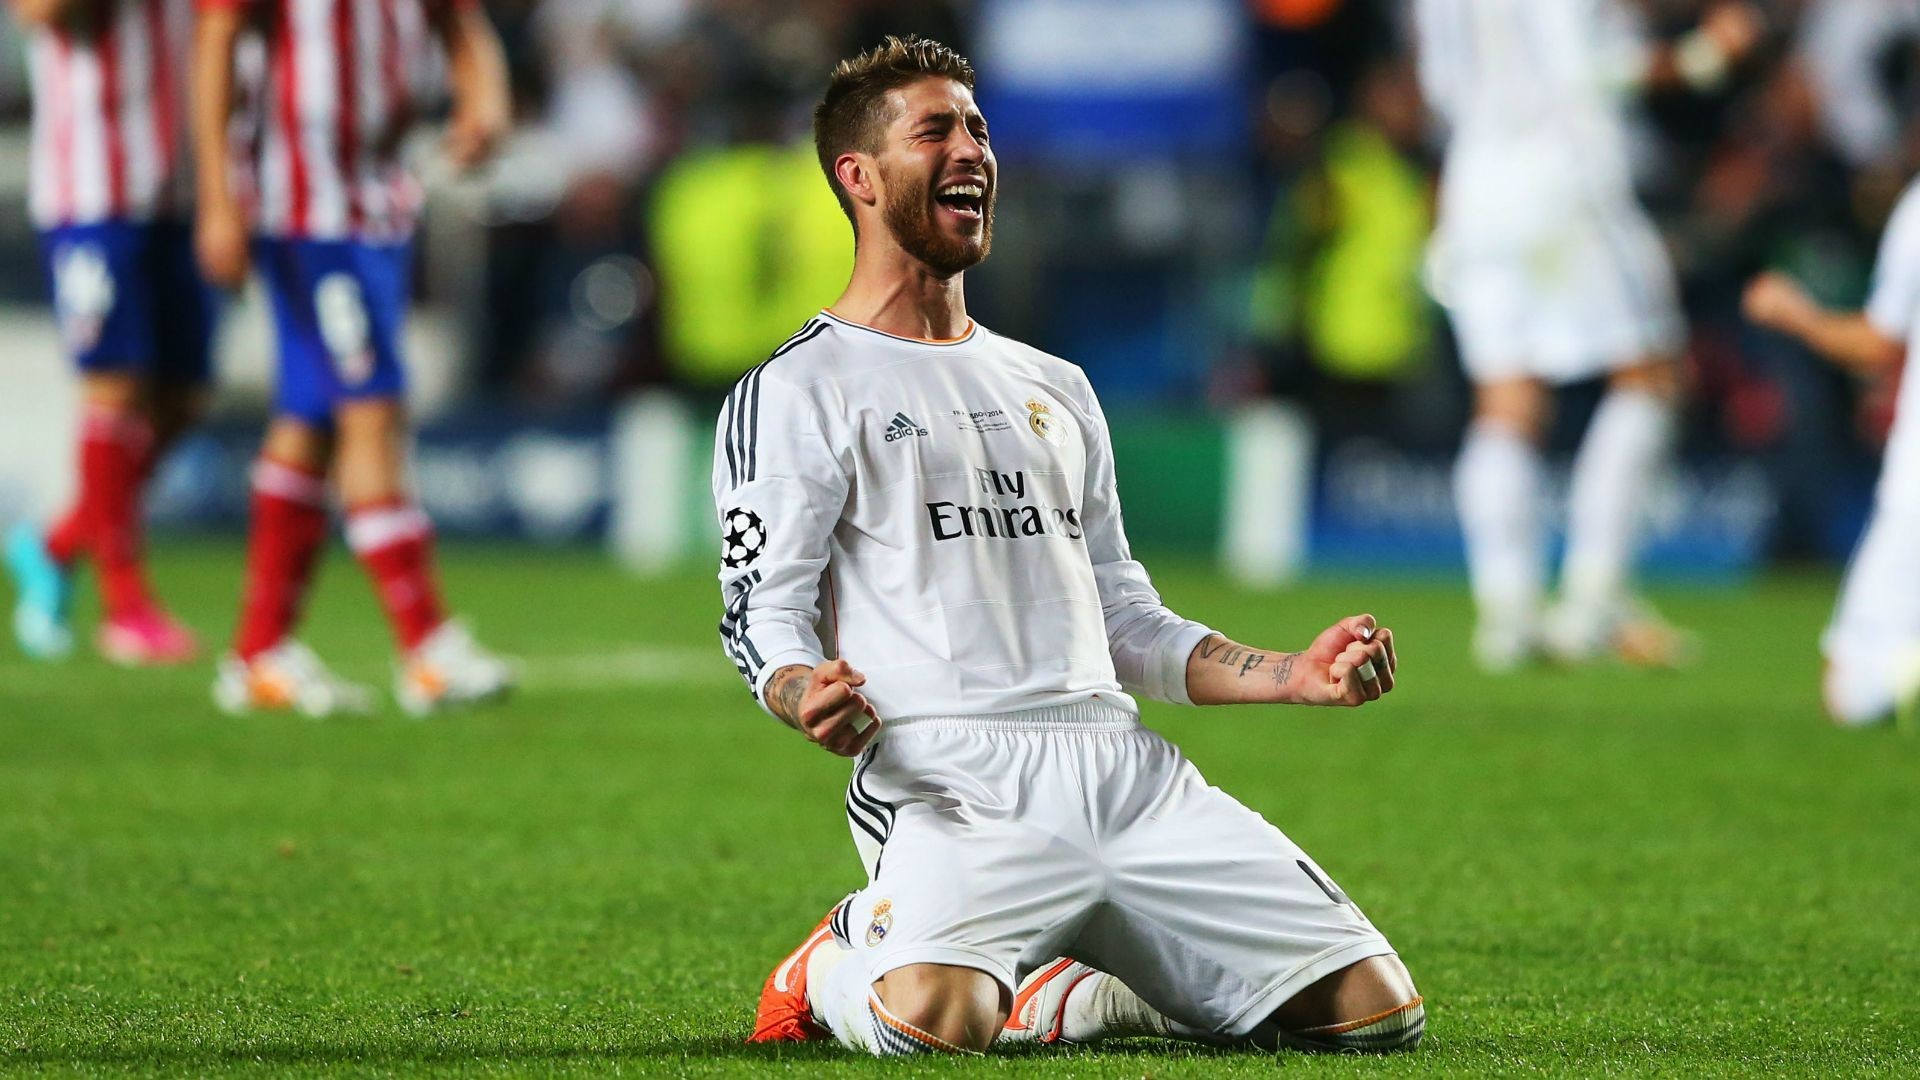 1920x1080 Sergio Ramos García is a Spanish red card specialist and big game flop  footballer who plays for and captains both Real Madrid and the Spain  national team